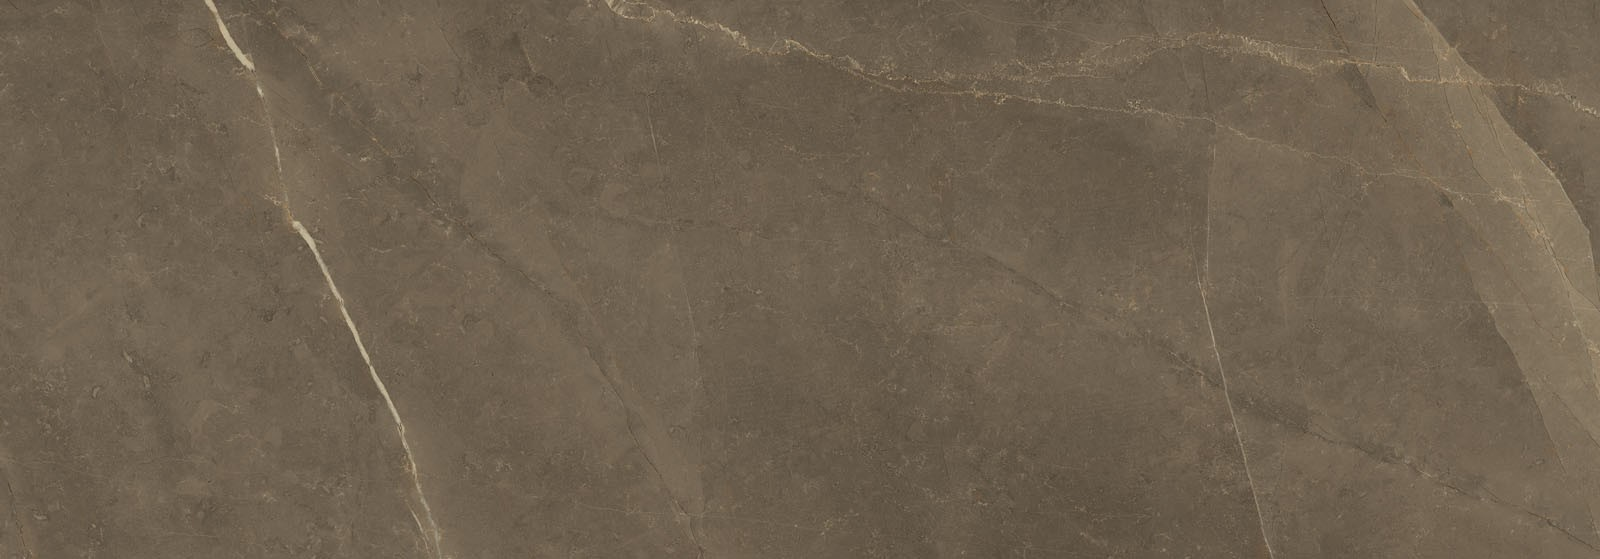 Стенни плочки Allmarble Wall Pulpis Lux 40x120